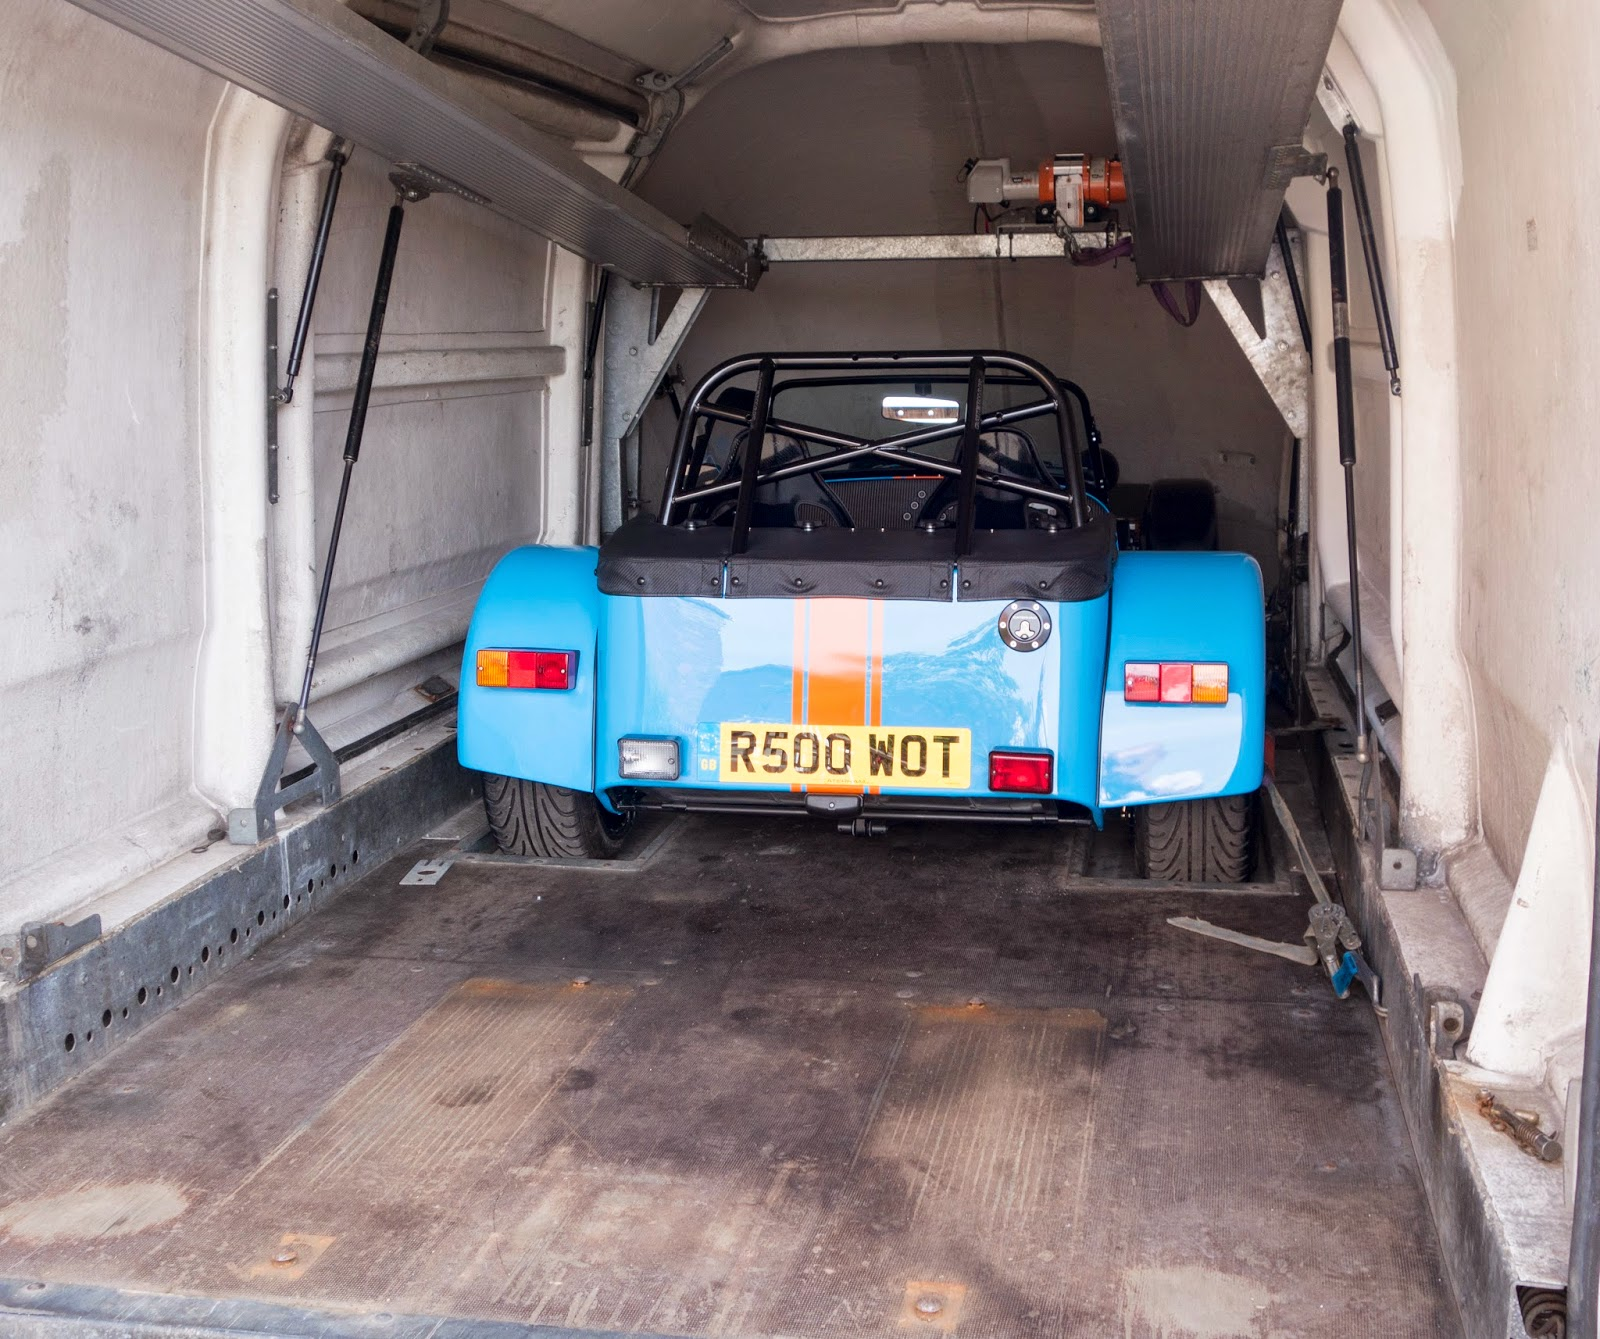 My Caterham R500 on the delivery van ready for unloading